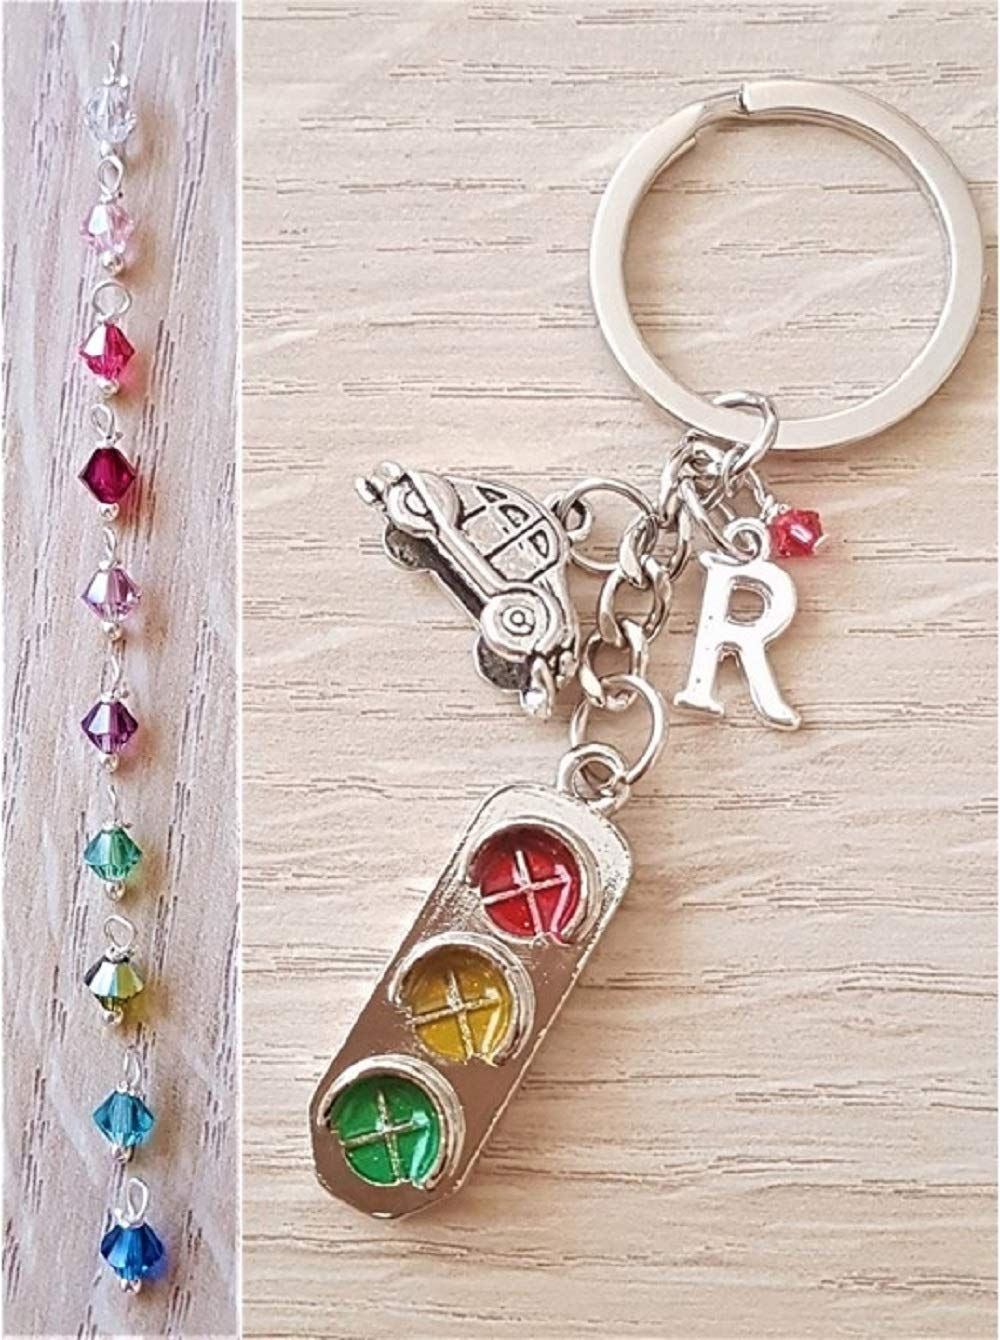 Handmade Congratulations You Passed Driving Test New Car Personalised Initial Keyring with Genuine Swarovski Crystal